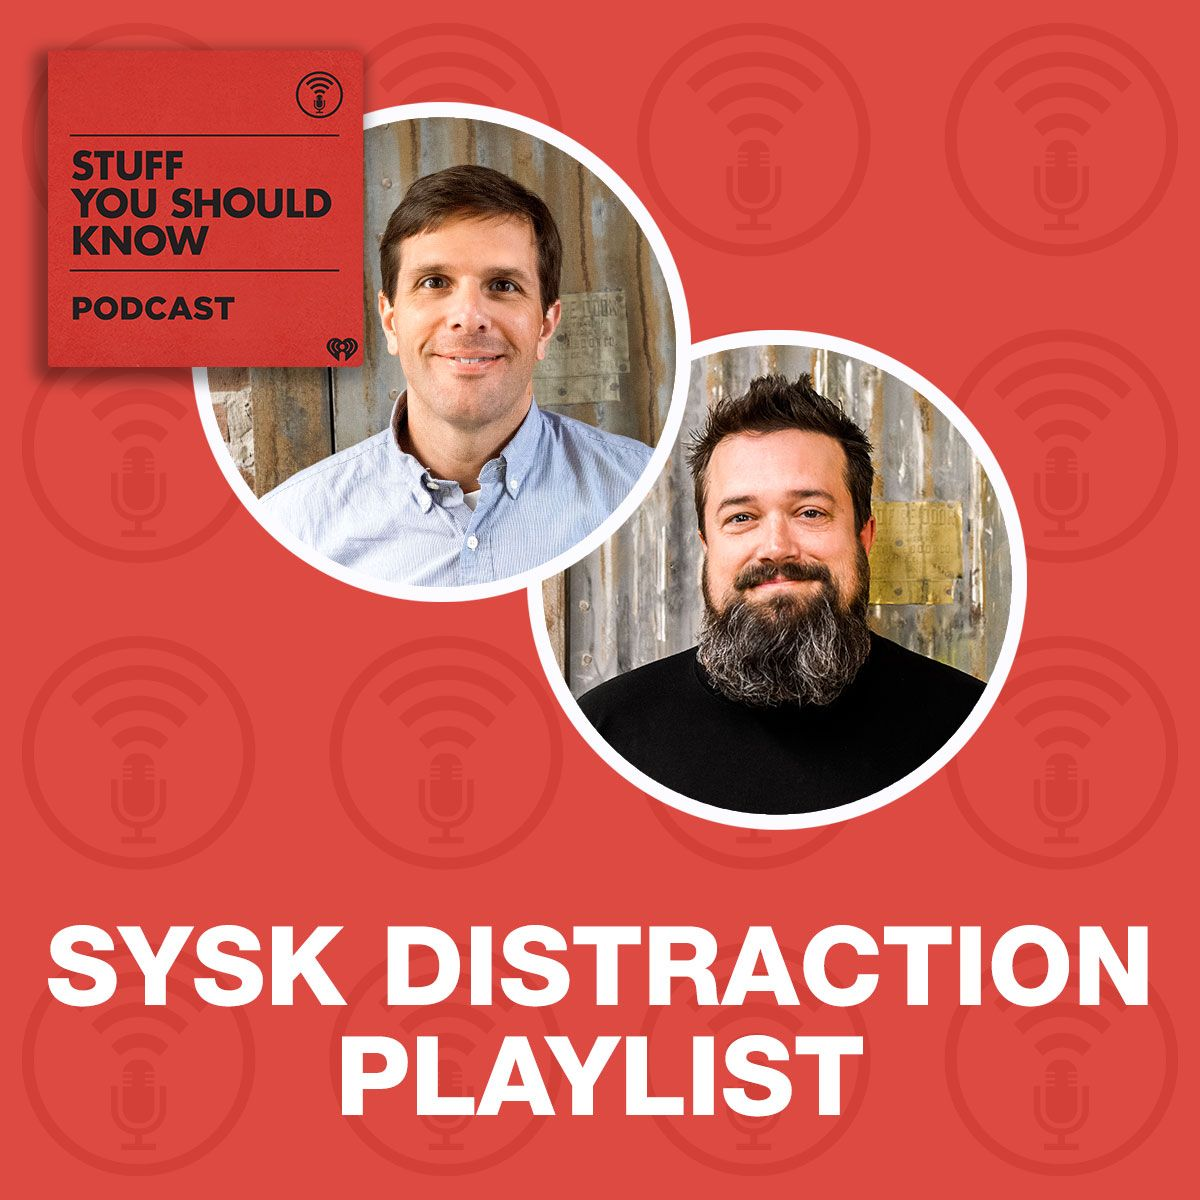 SYSK Distraction Playlist: The Amazing History of Soda